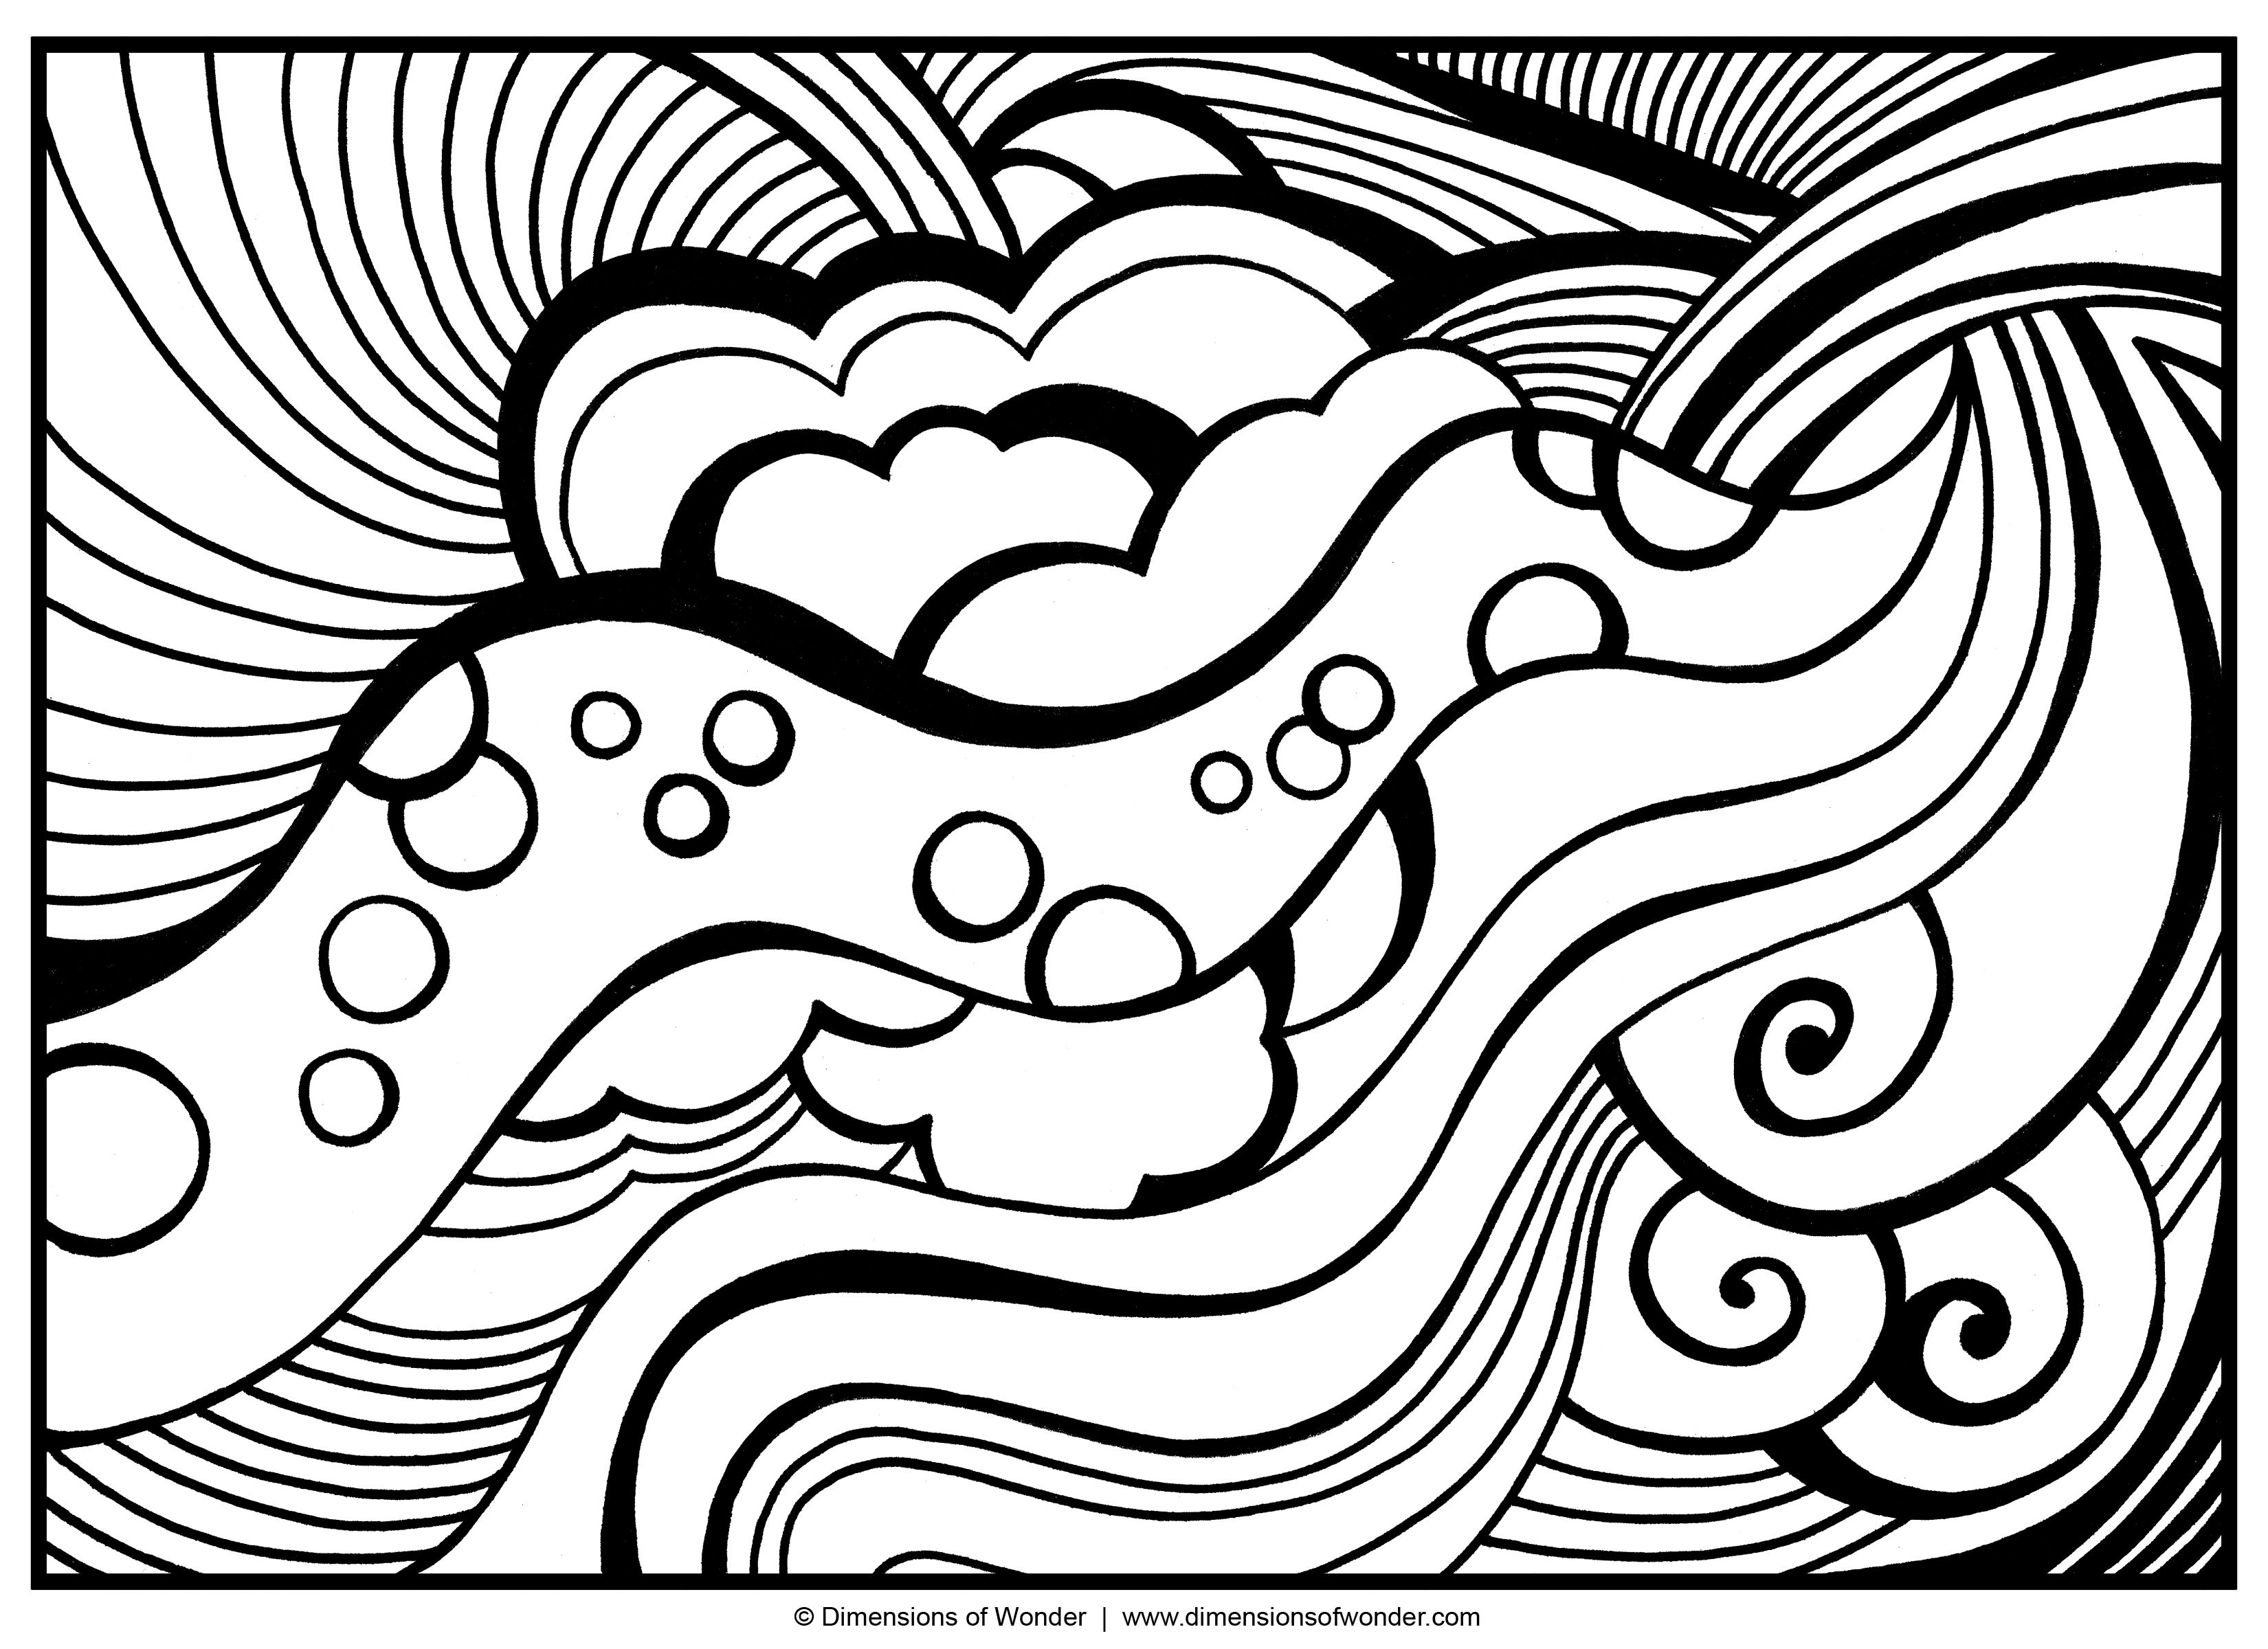 Fast Pablo Picasso Coloring Pages Coloring Pages For Kids Intelligence Pablo Picasso Coloring Pages Picasso Coloring Cubism Art Picasso Art